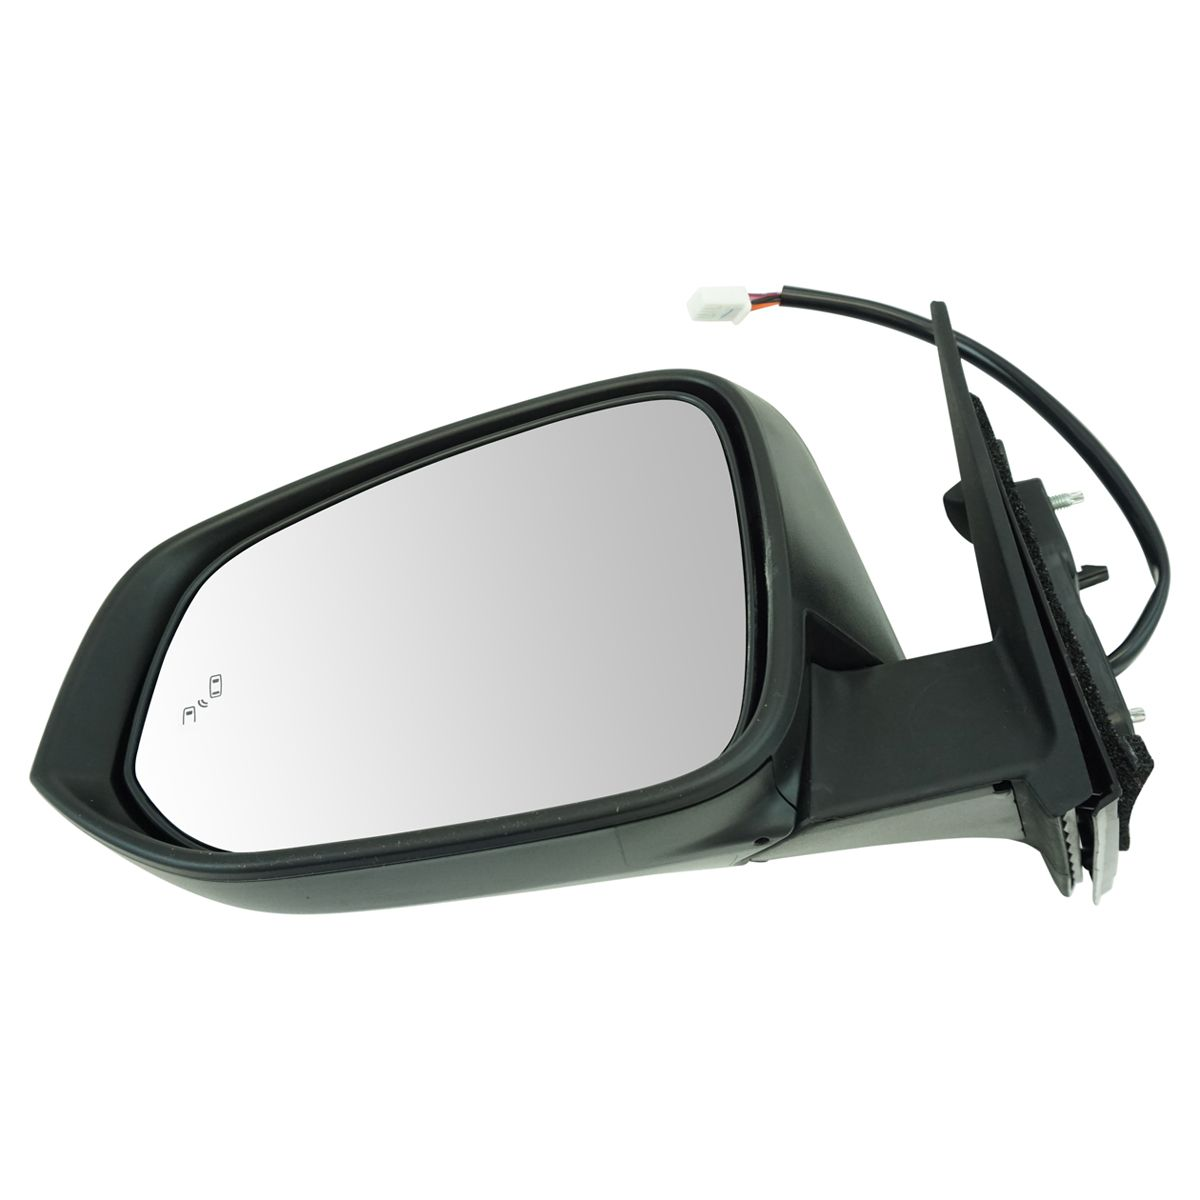 Exterior Power Heated Mirror with Blind Spot Detection /& Turn Signal RH for SUV